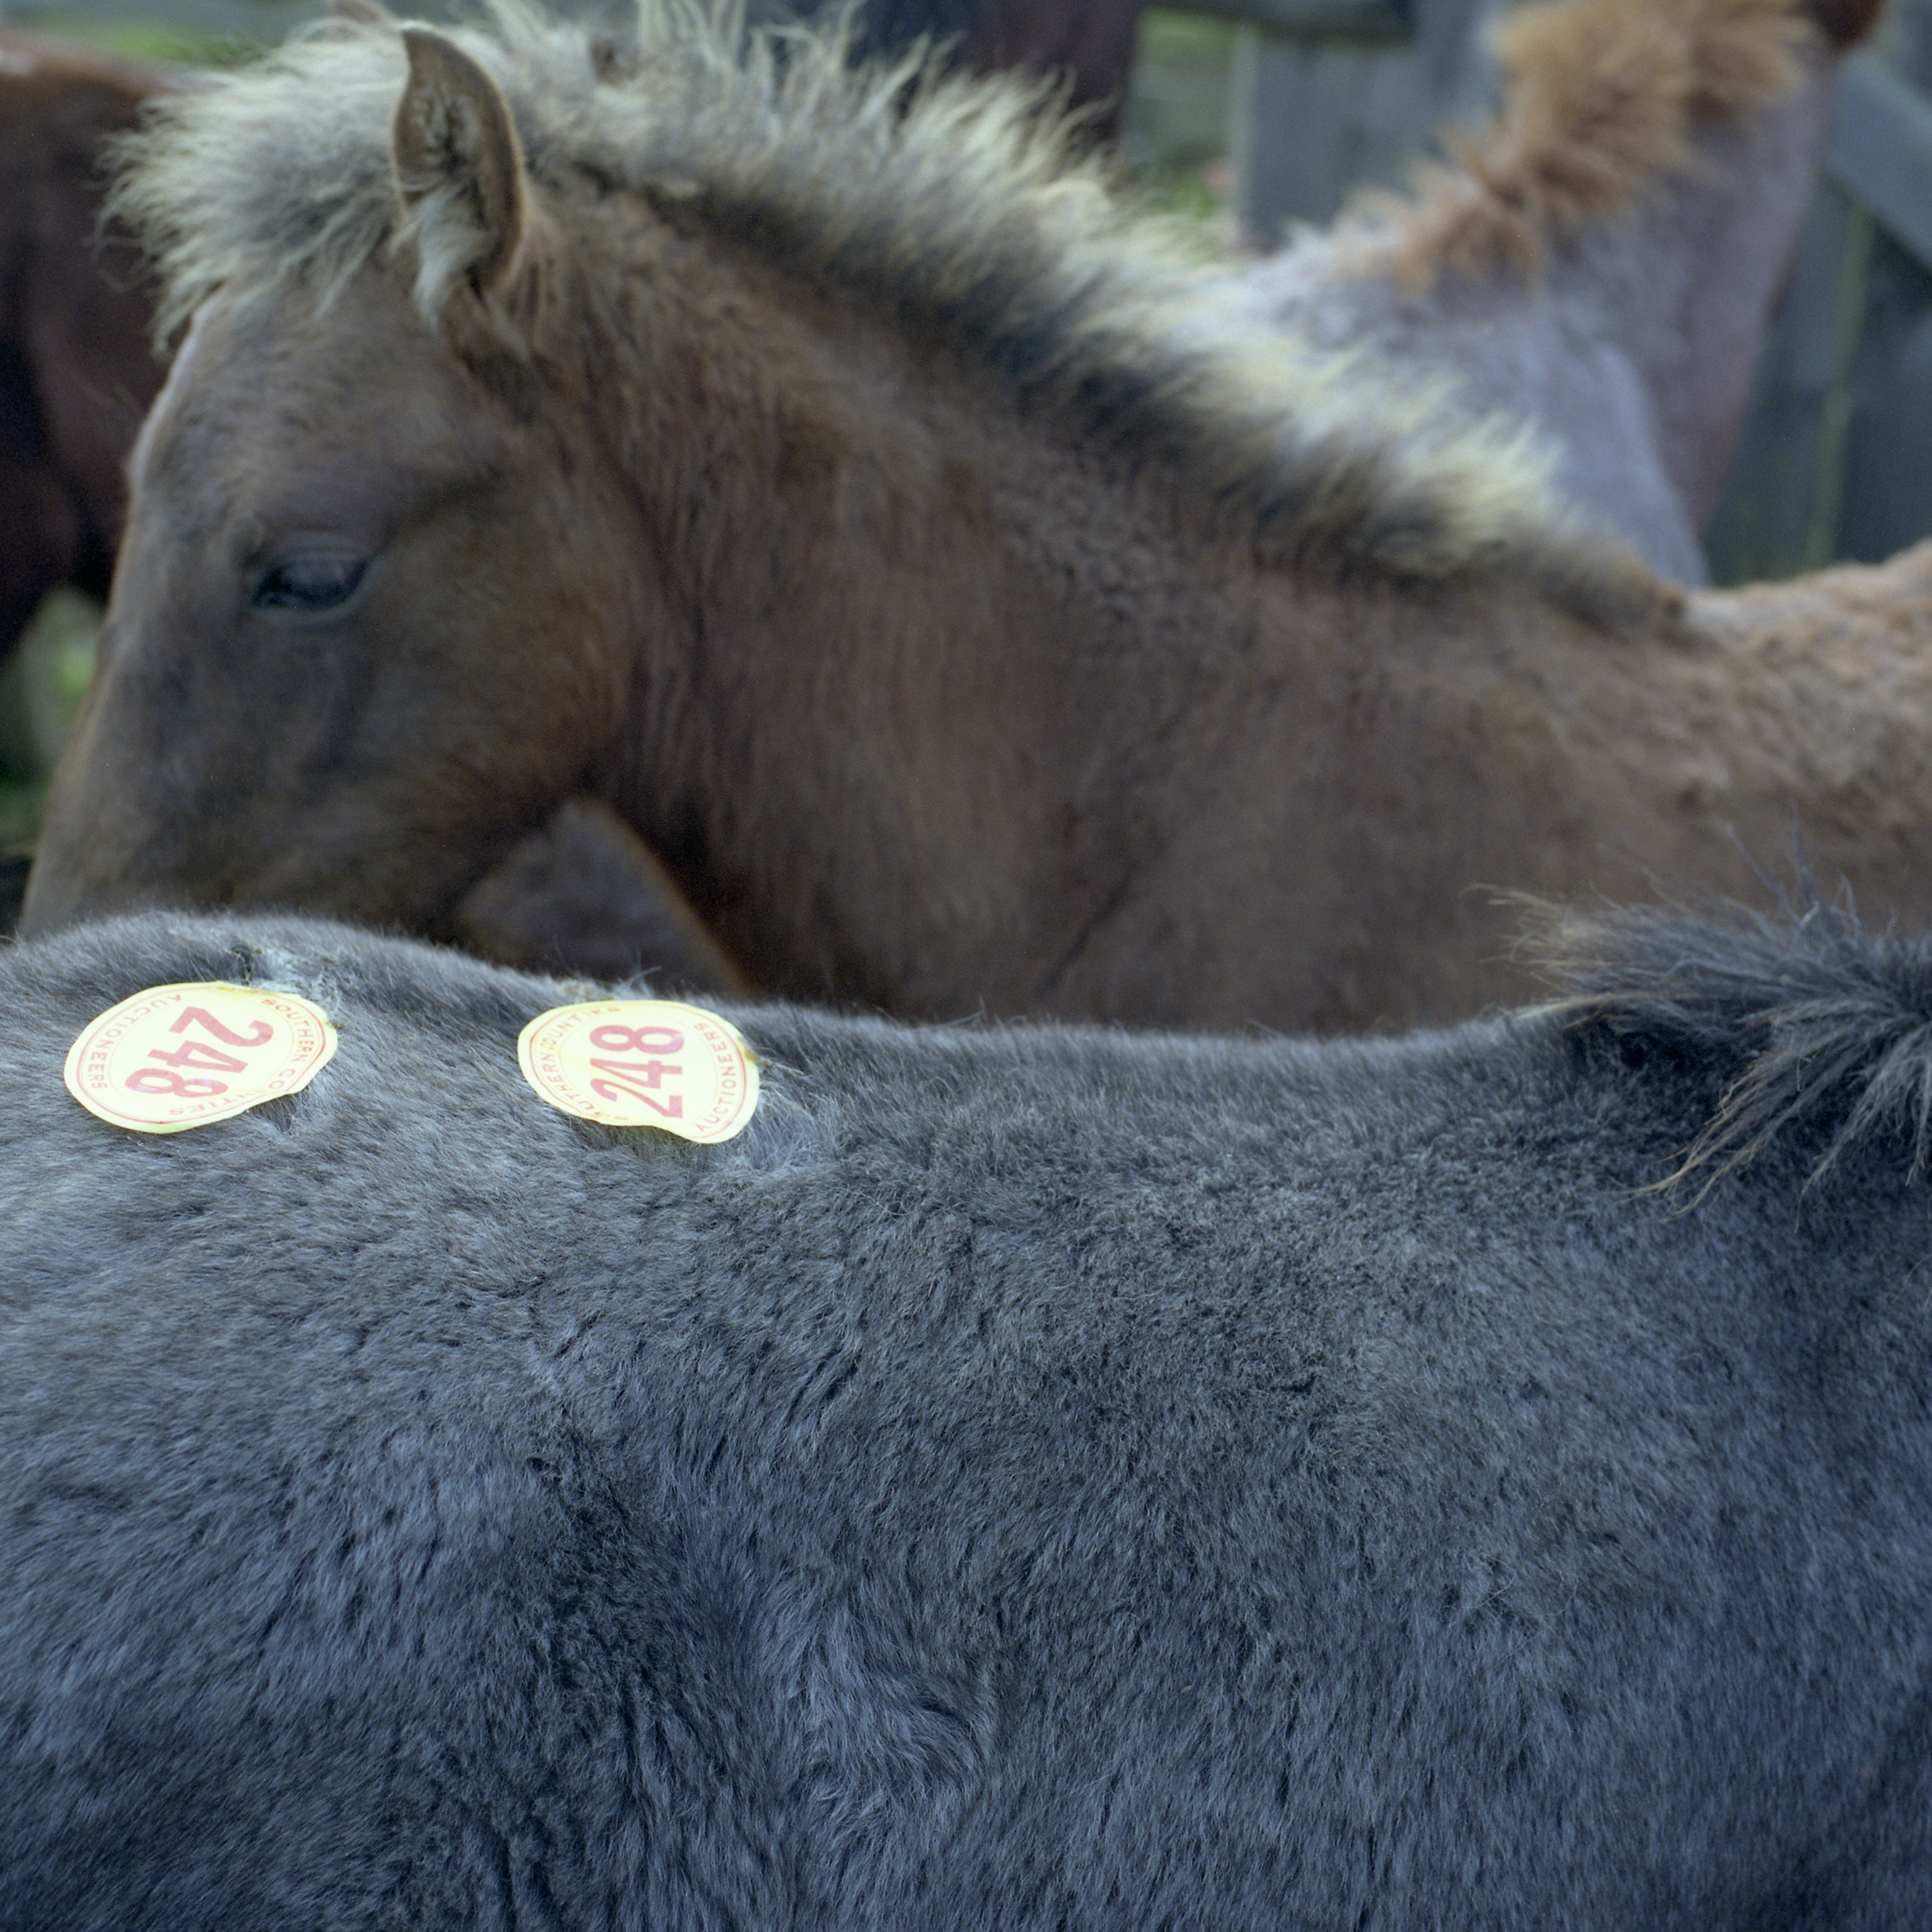 NEW FOREST PONY AUCTION